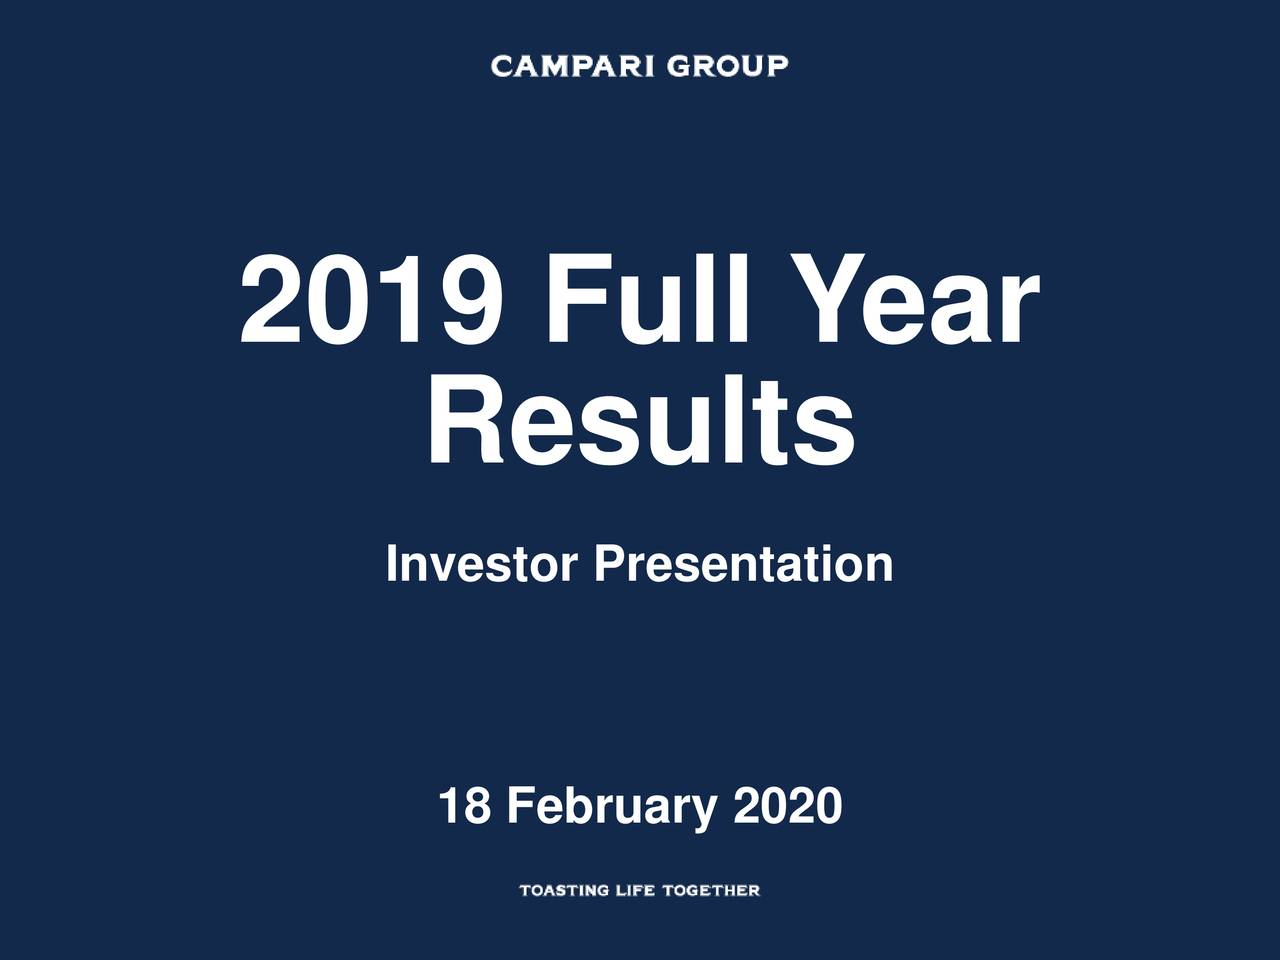 Davide Campari-Milano S.p.A. 2019 Q4 - Results - Earnings Call Presentation - Davide Campari-Milano S.p.A. (OTCMKTS:DVDCF) | Seeking Alpha